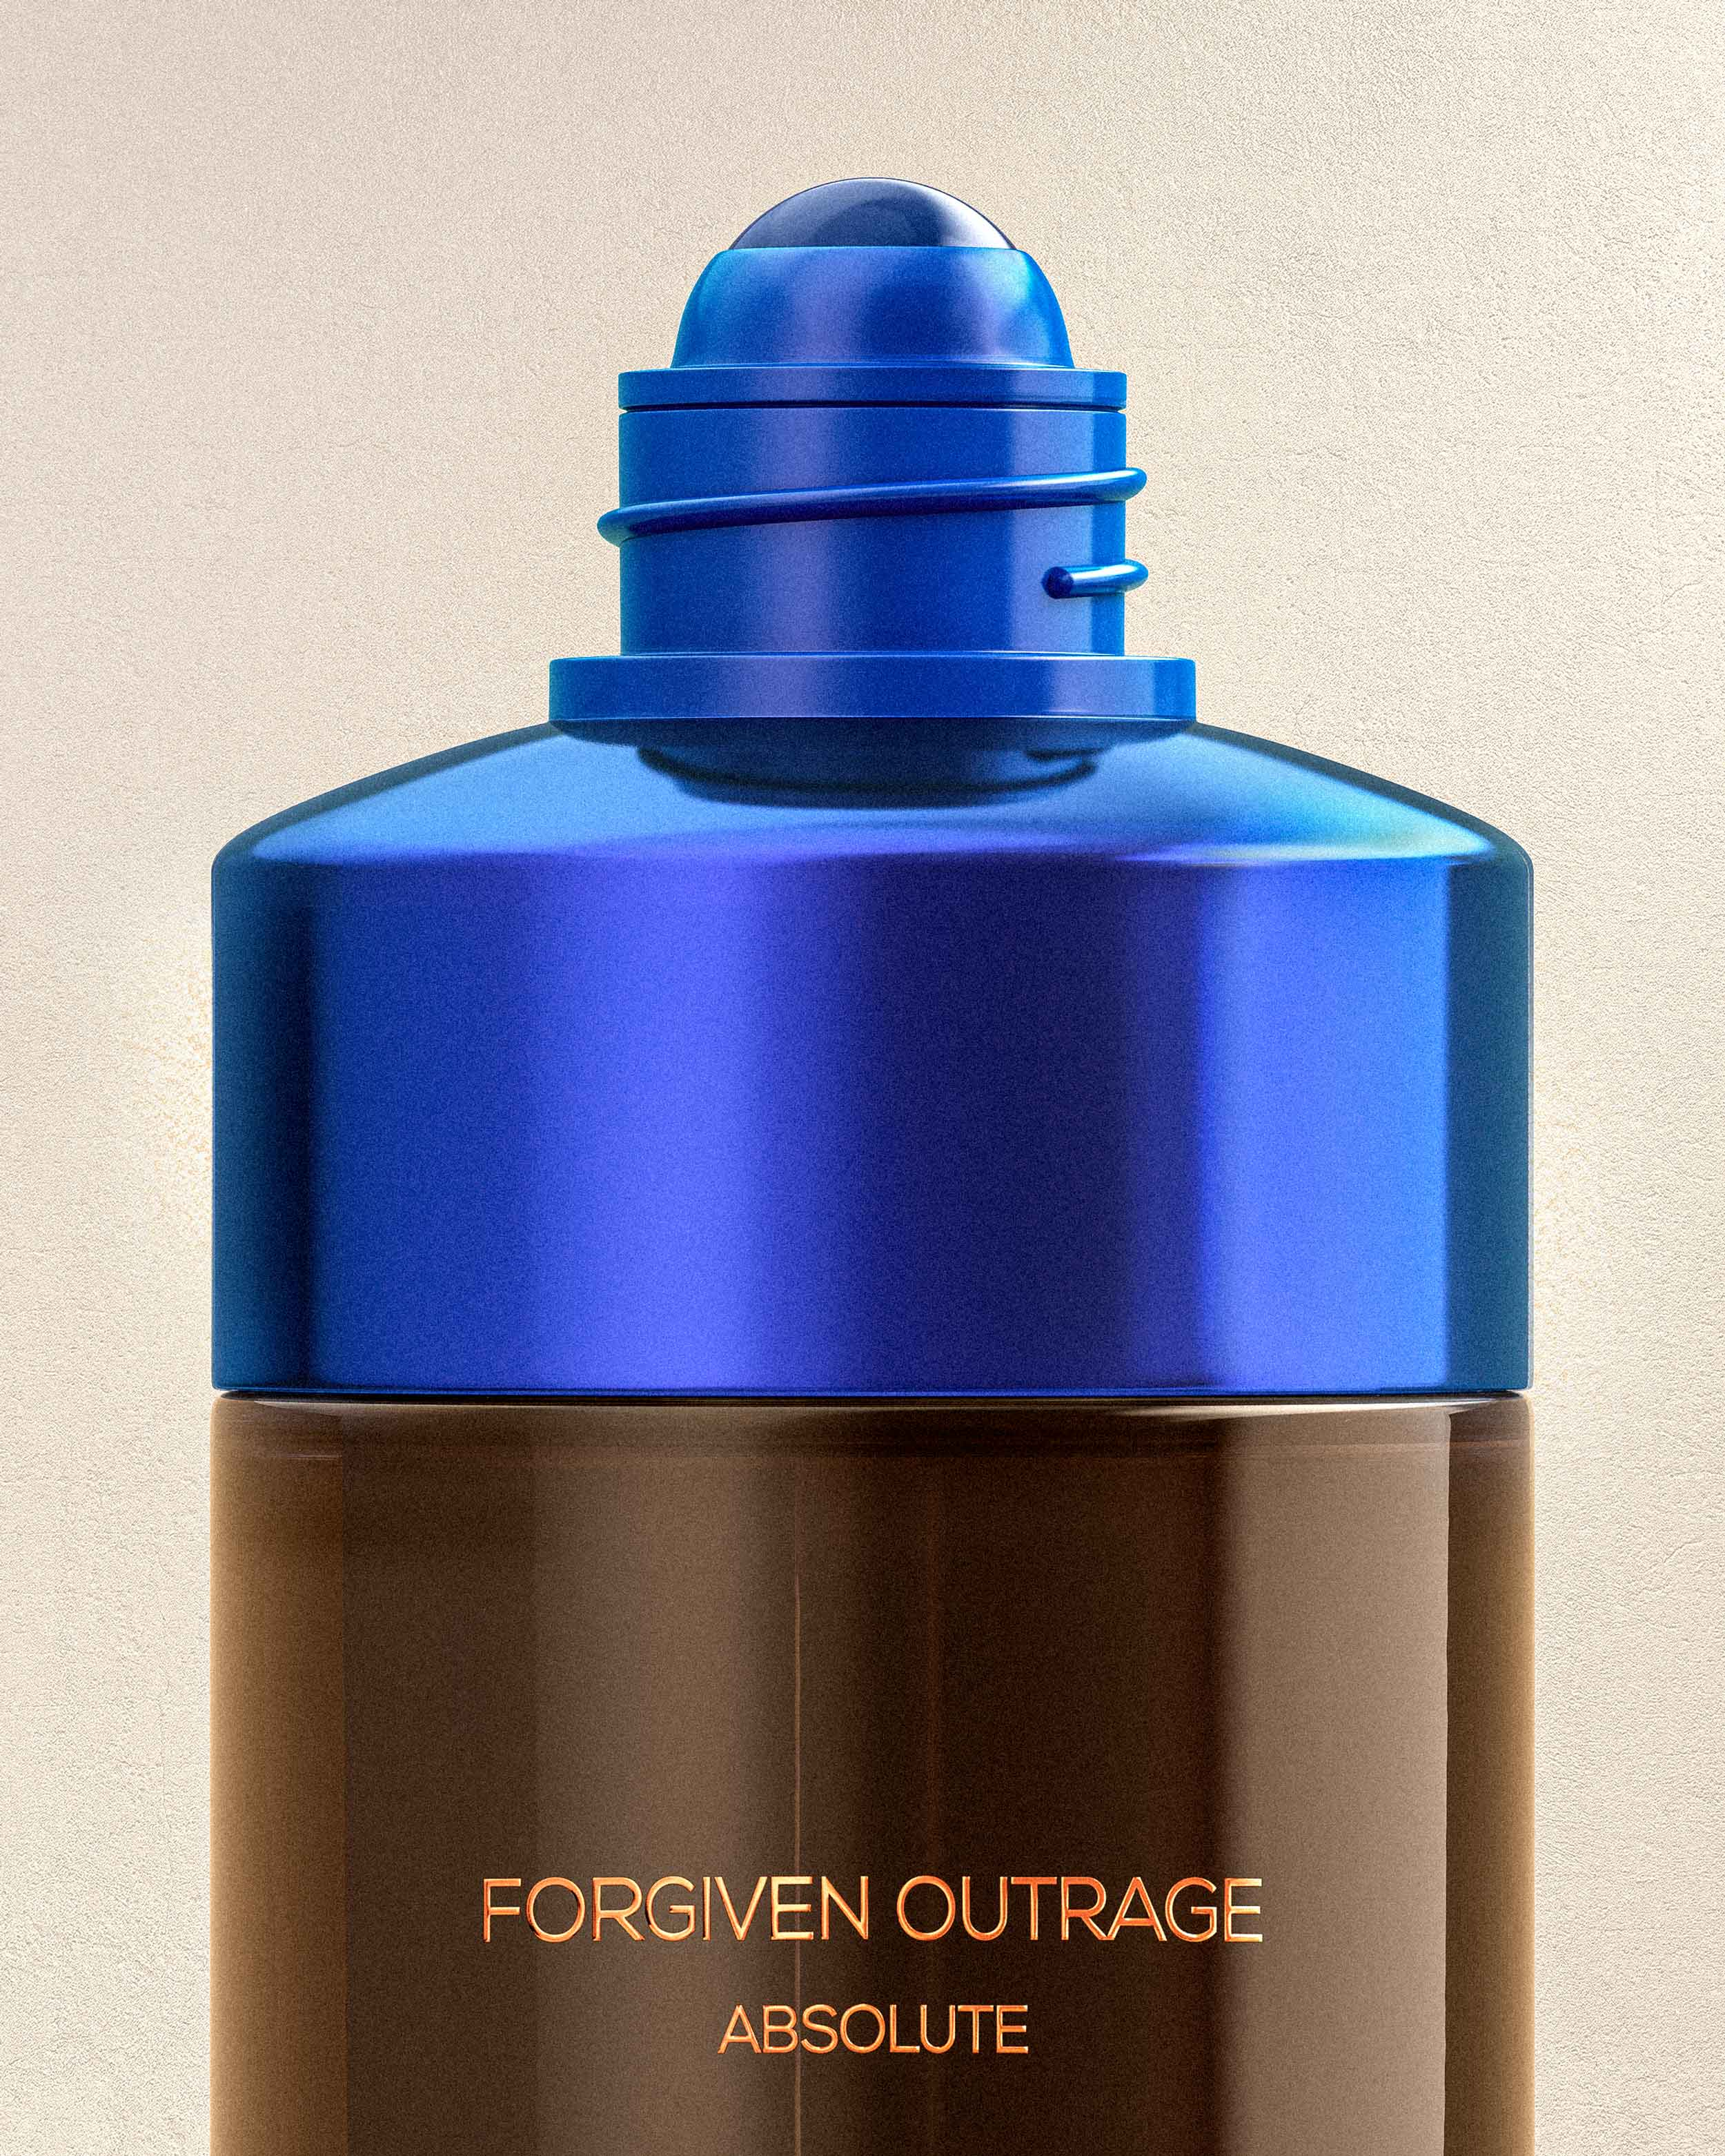 OJAR Absolute Forgiven Outrage Perfume Roll-on